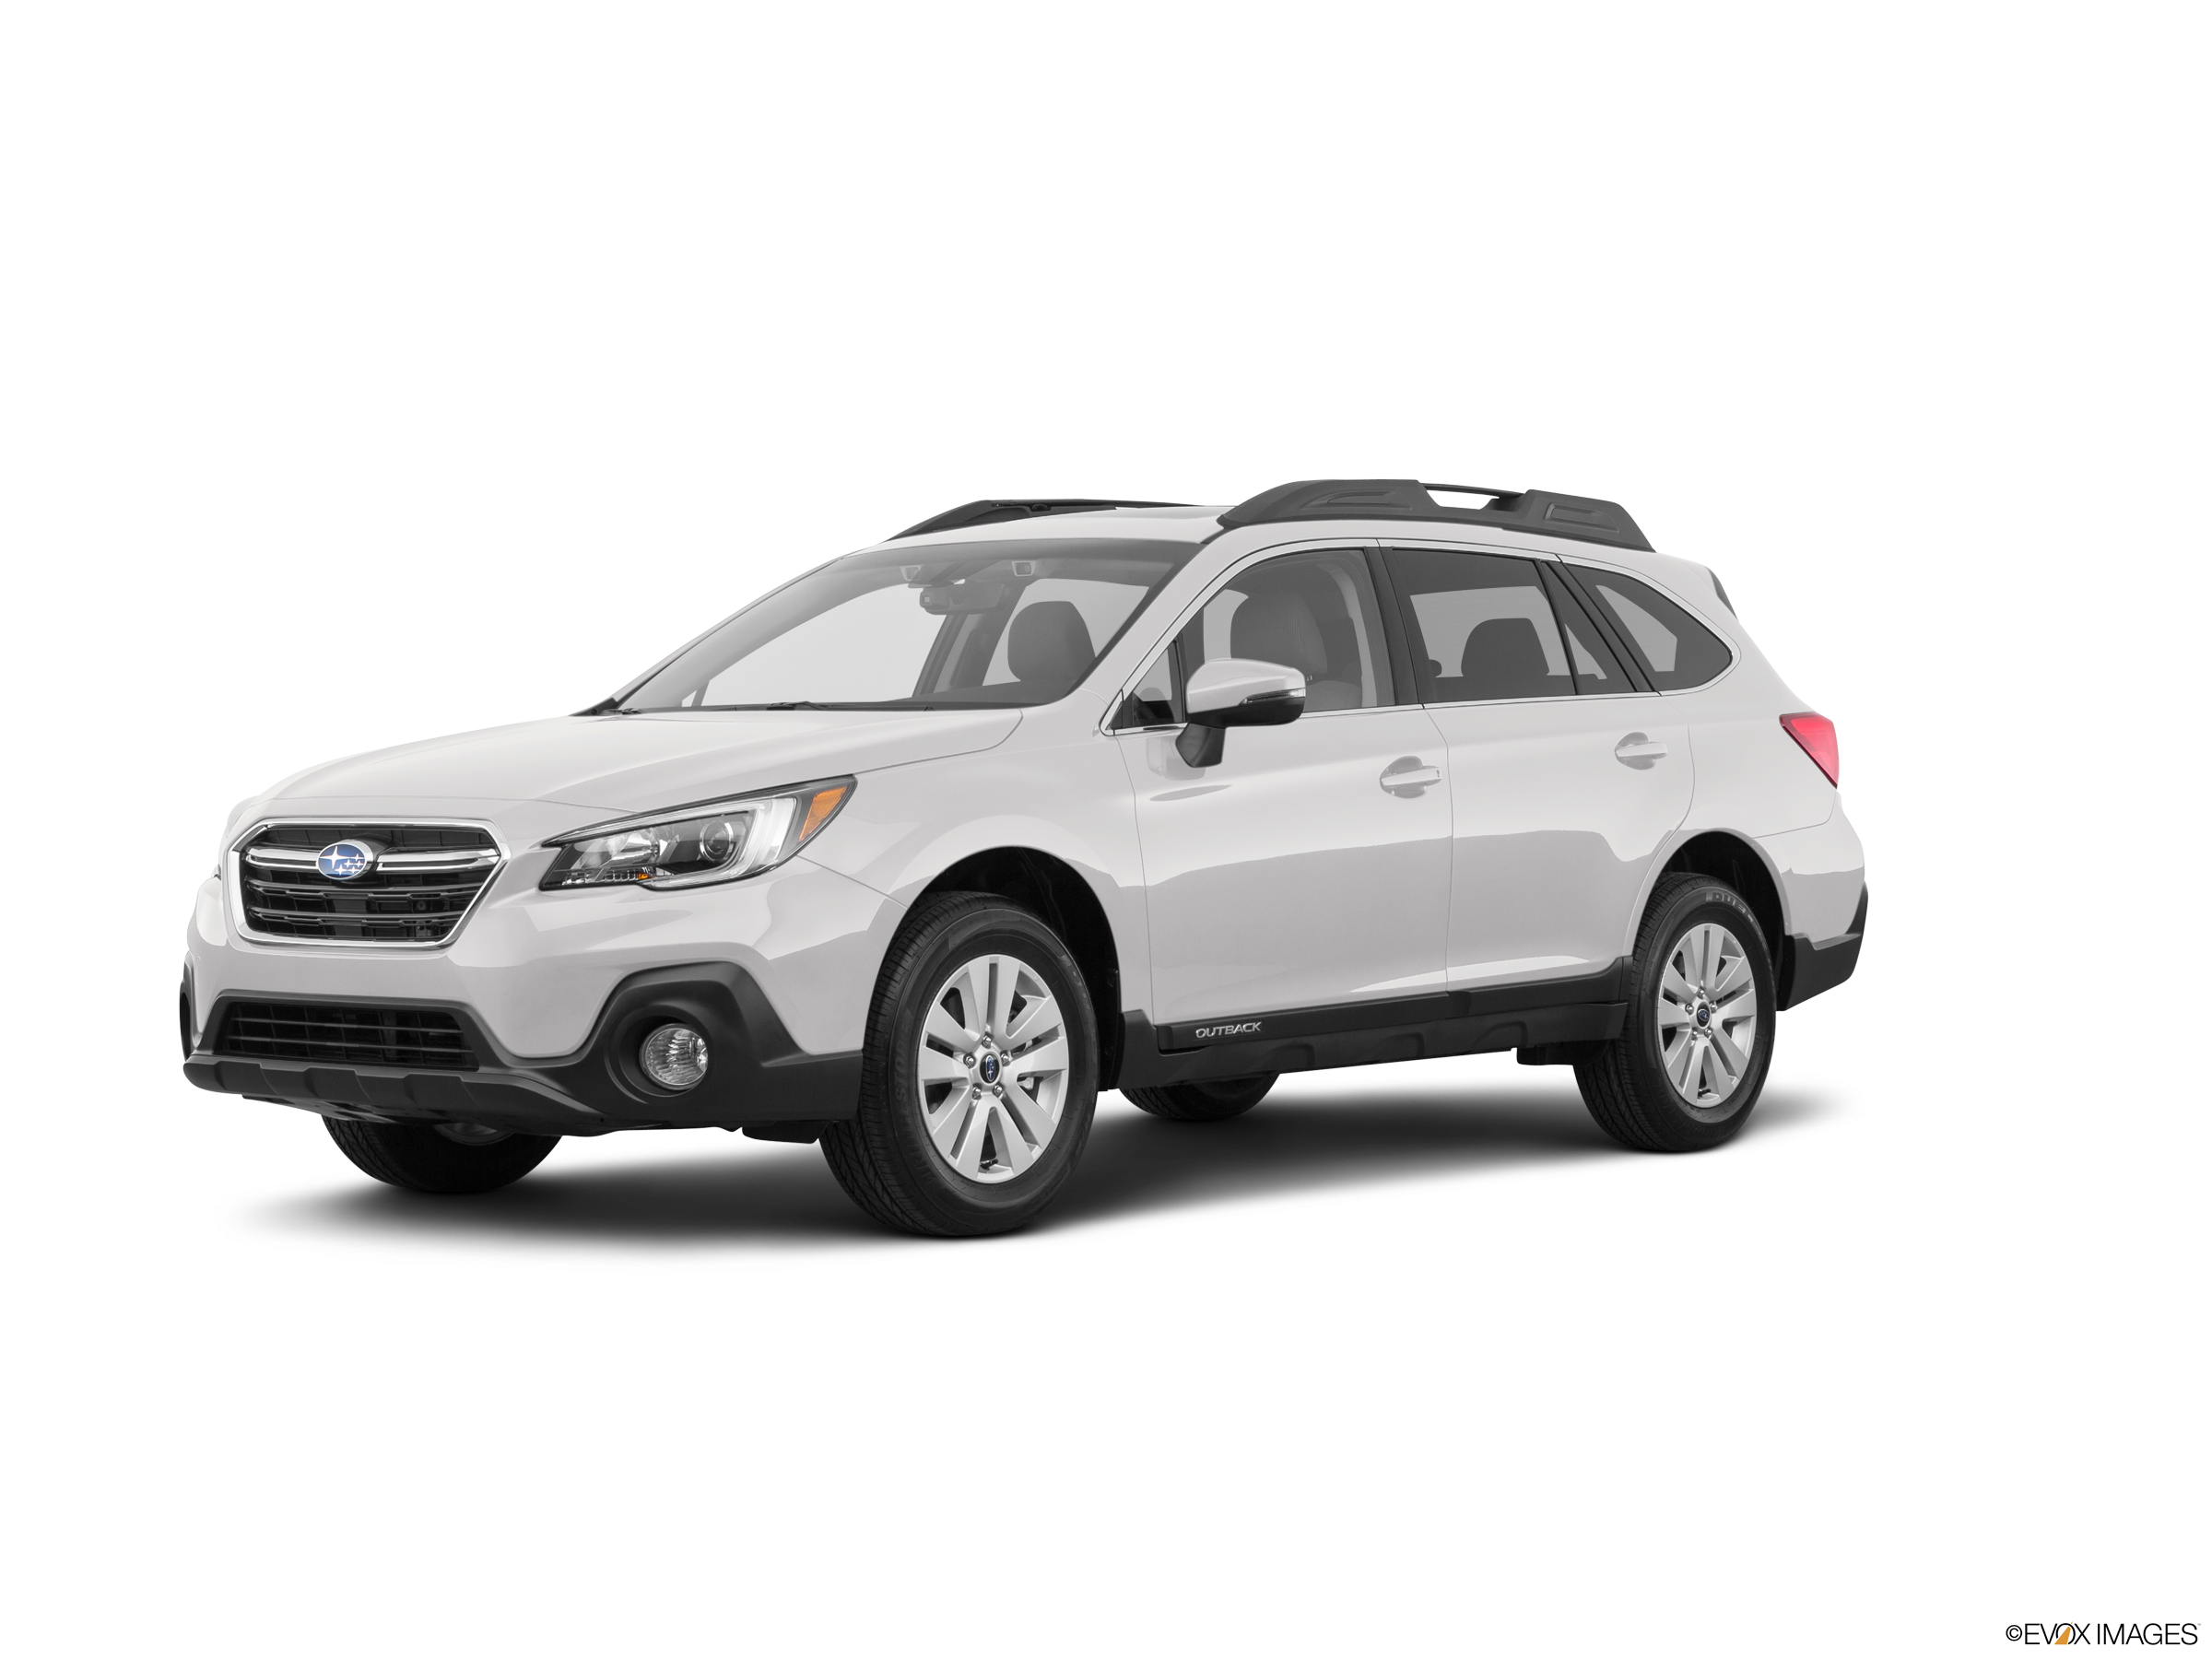 Most Popular Crossovers of 2019 - 2019 Subaru Outback